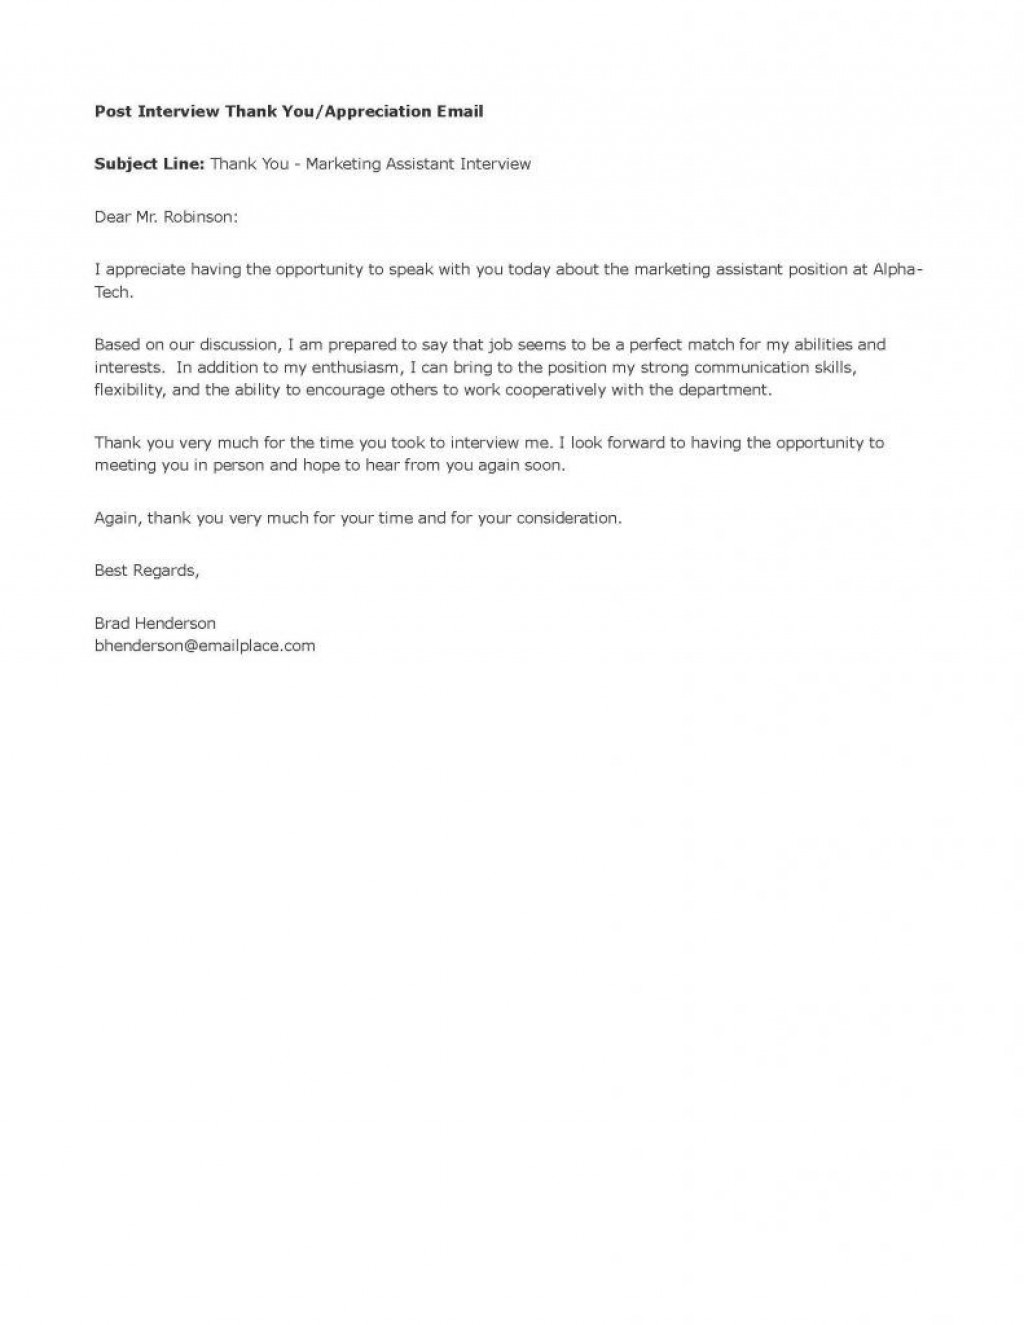 003 Marvelou Follow Up Letter After Interview Picture  Handwritten Note Email Sample For Job TemplateLarge